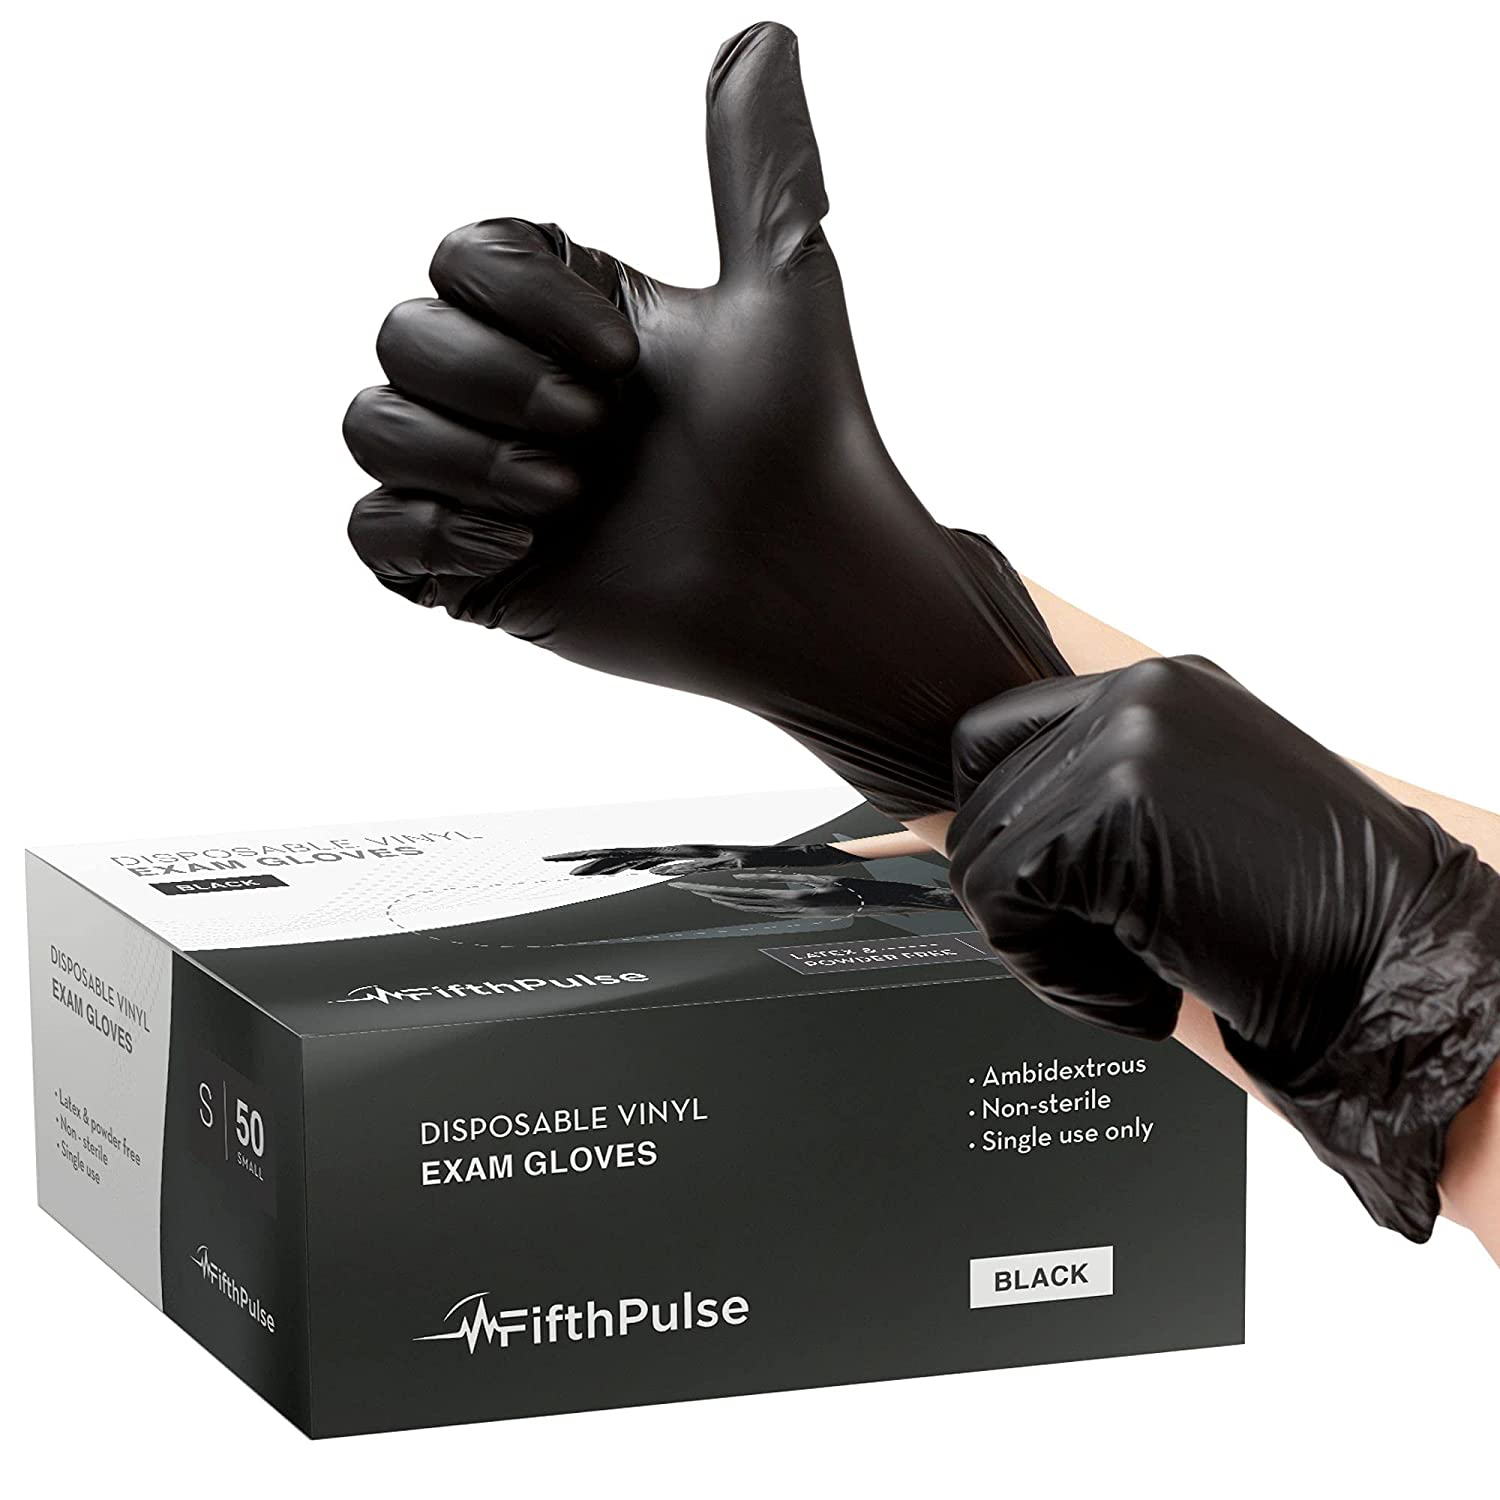 FifthPulse Black Vinyl Disposable Gloves Small 50 Pack - Latex Free, Powder Free Medical Exam Gloves - Surgical, Home, Cleaning, and Food Gloves - 3 Mil Thickness